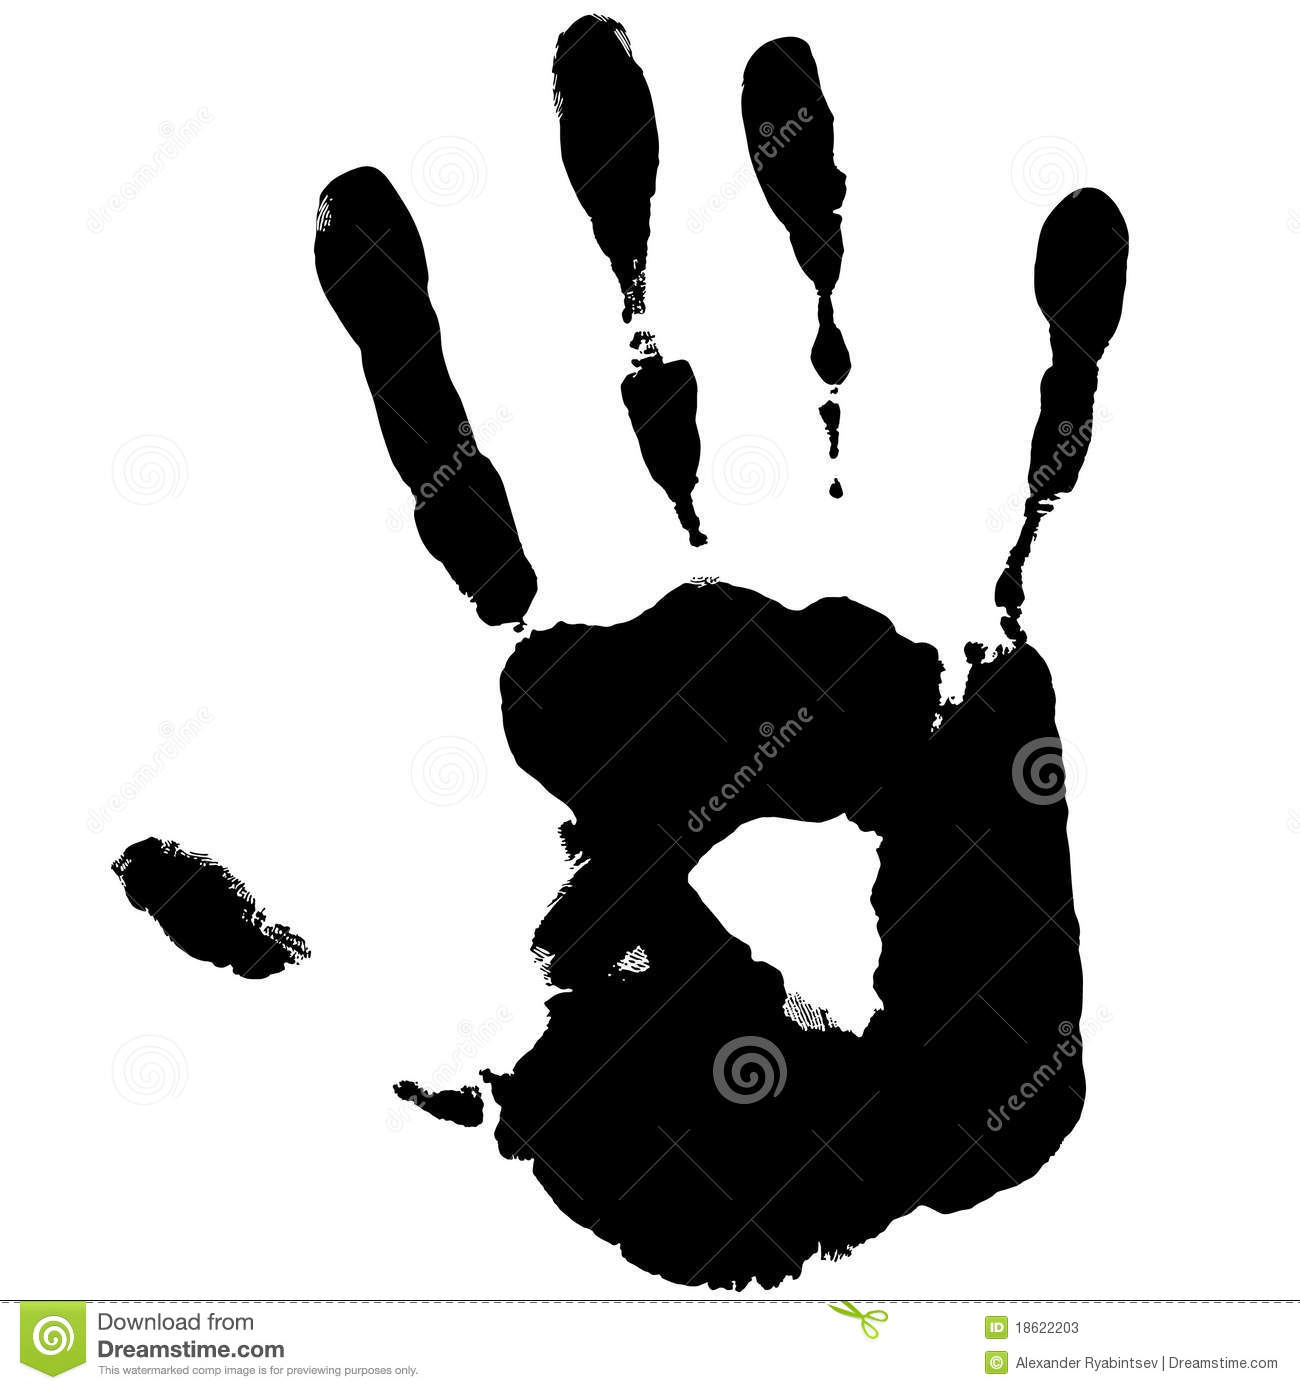 Black Hand Print Stock Vector. Image Of Arms, Night